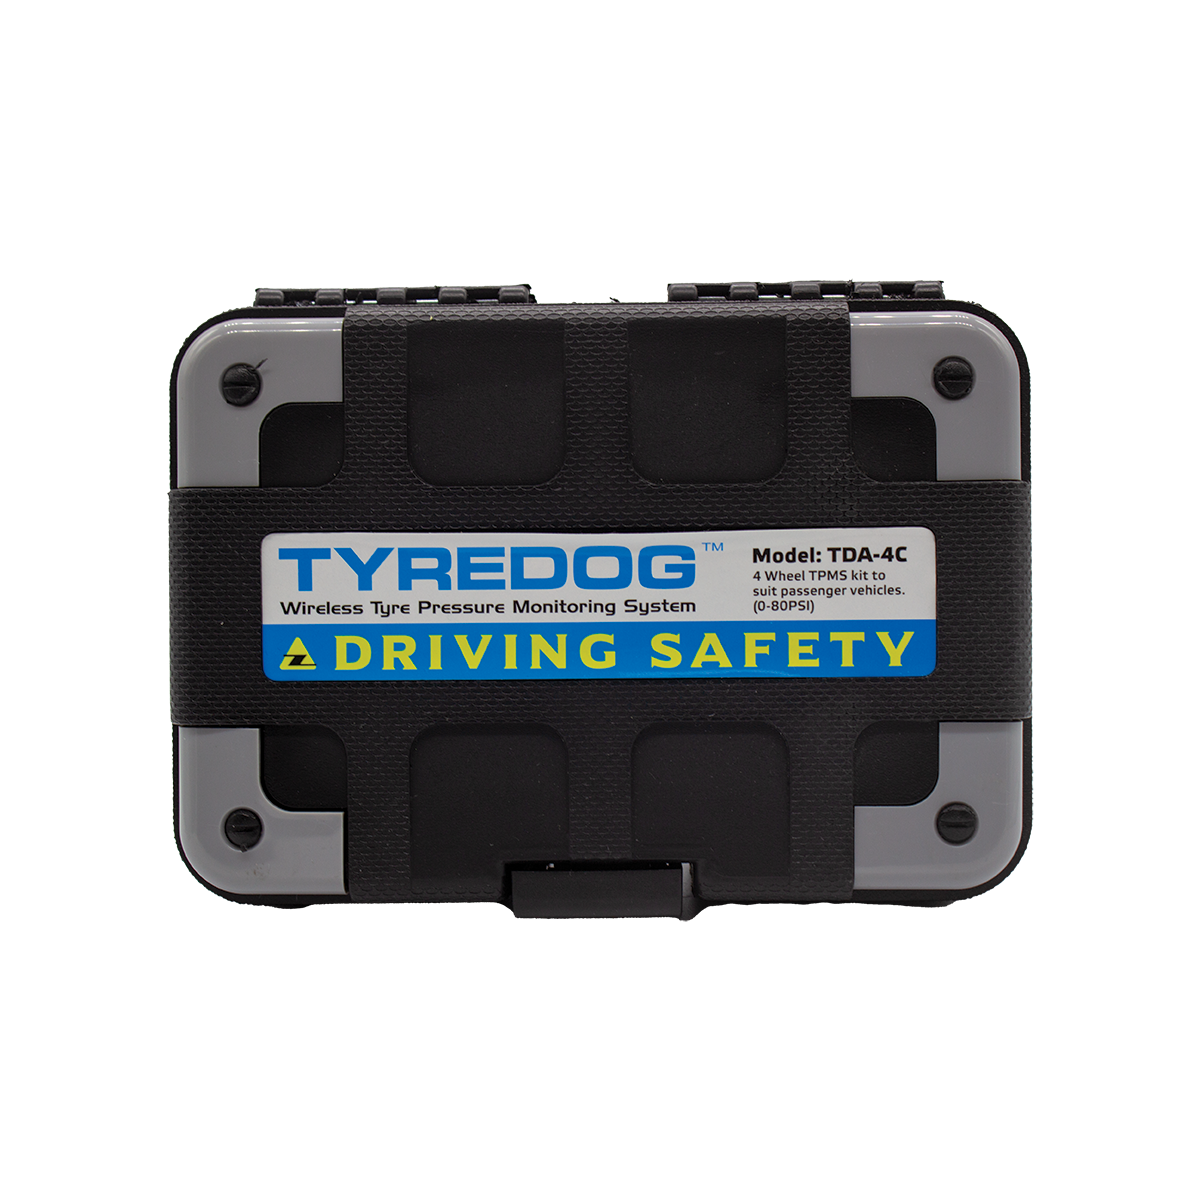 Tyredog TDA-4C Tyre Pressure Monitoring System